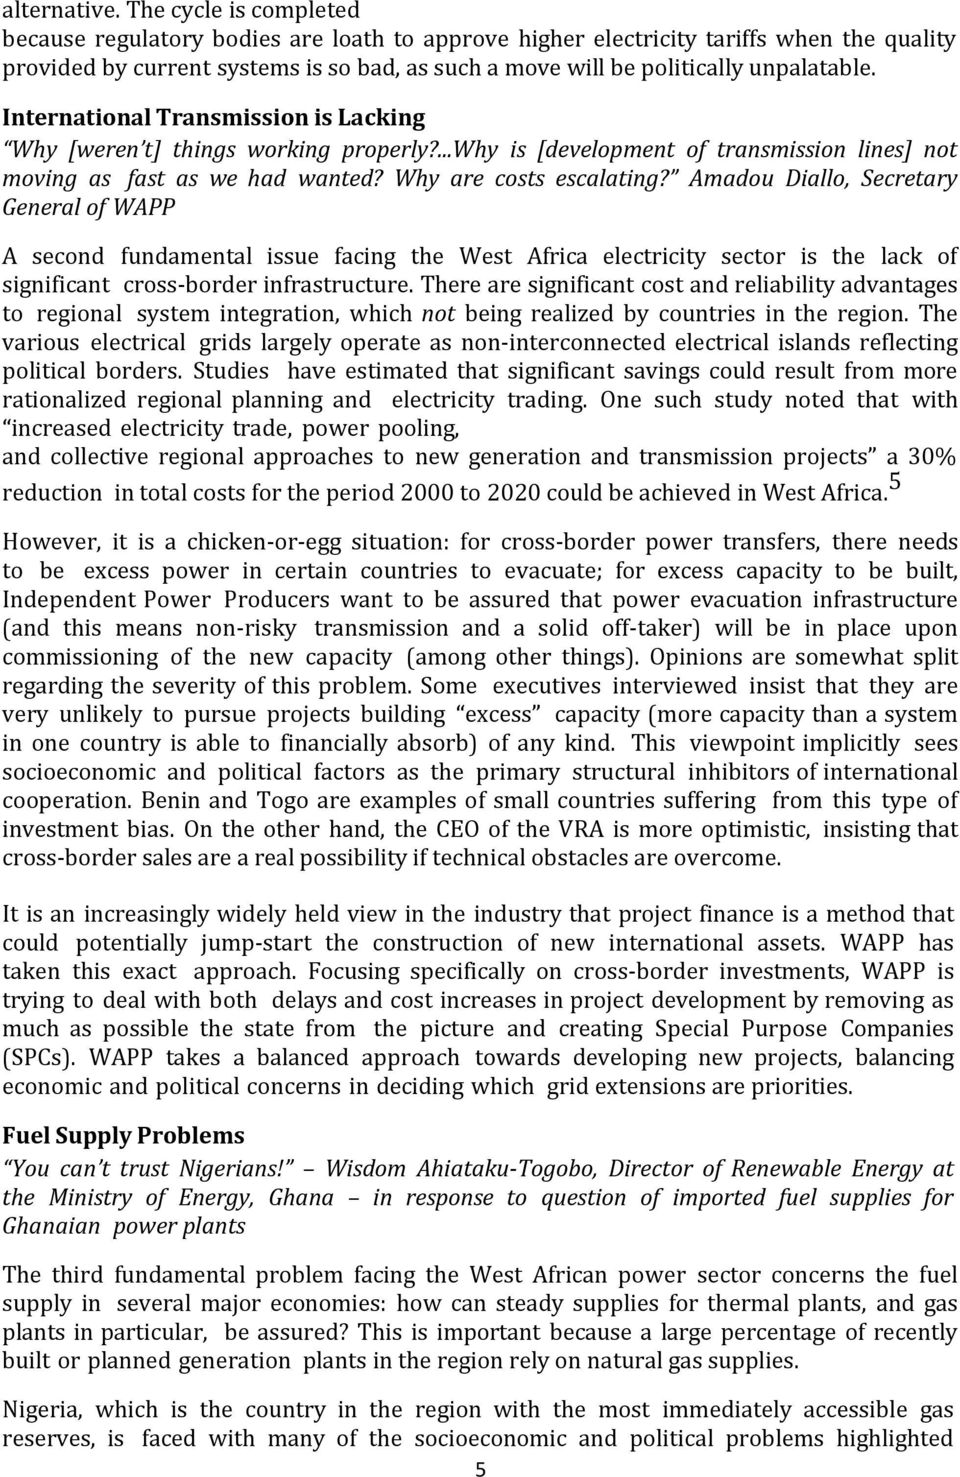 International Transmission is Lacking Why [weren t] things working properly?...why is [development of transmission lines] not moving as fast as we had wanted? Why are costs escalating?